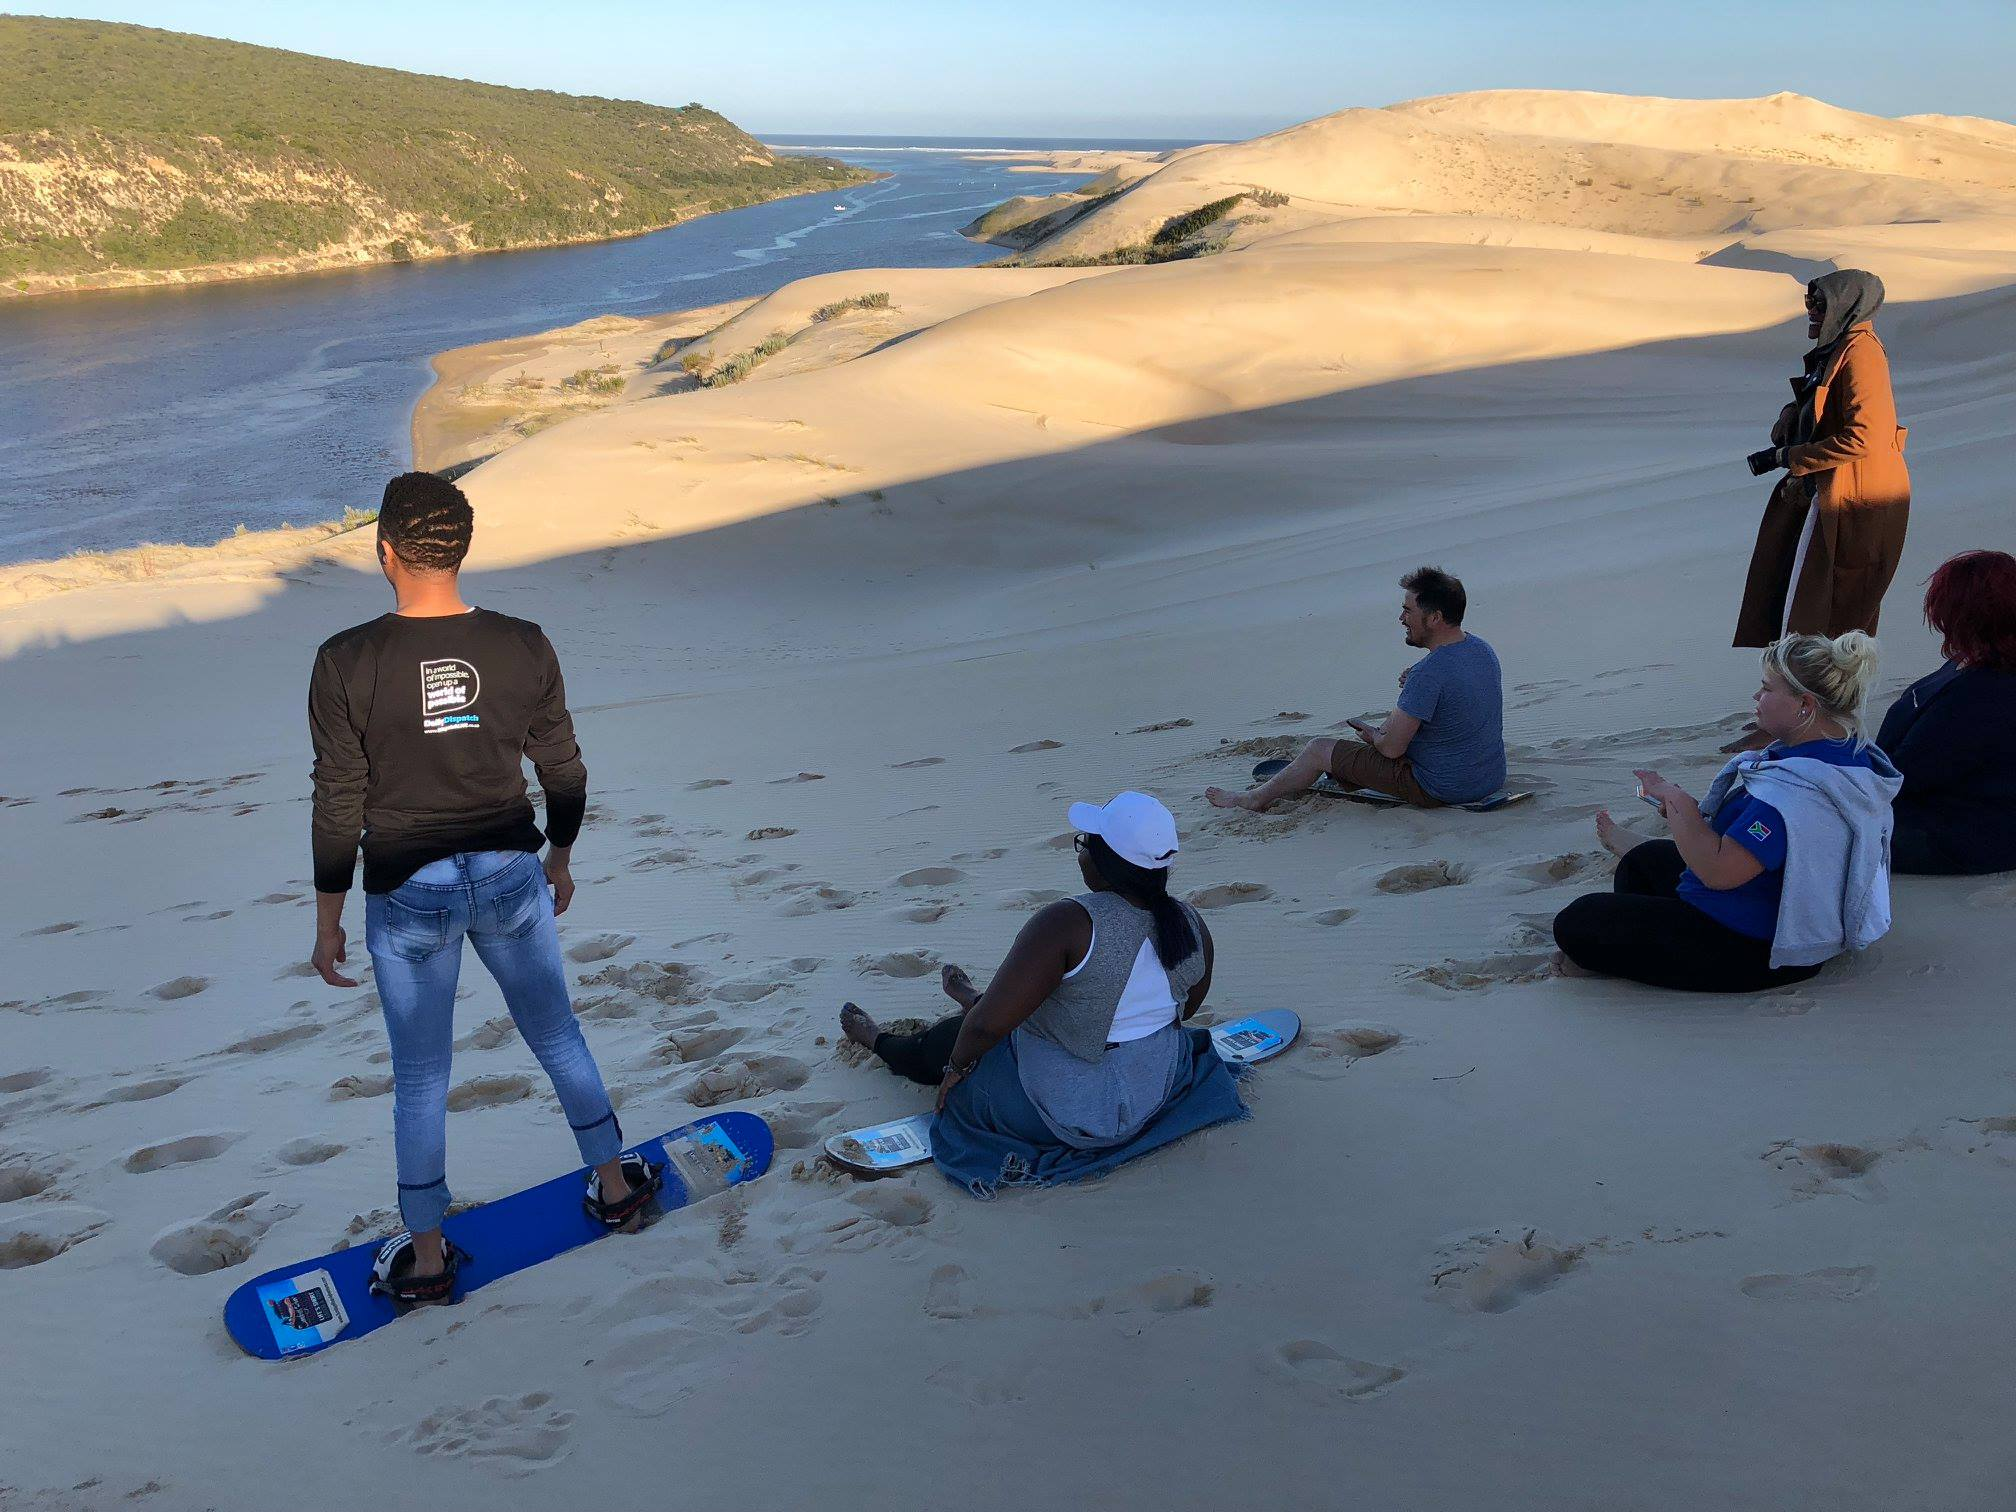 adventure in the eastern cape, dunes in south africa, sandboarding in south africa